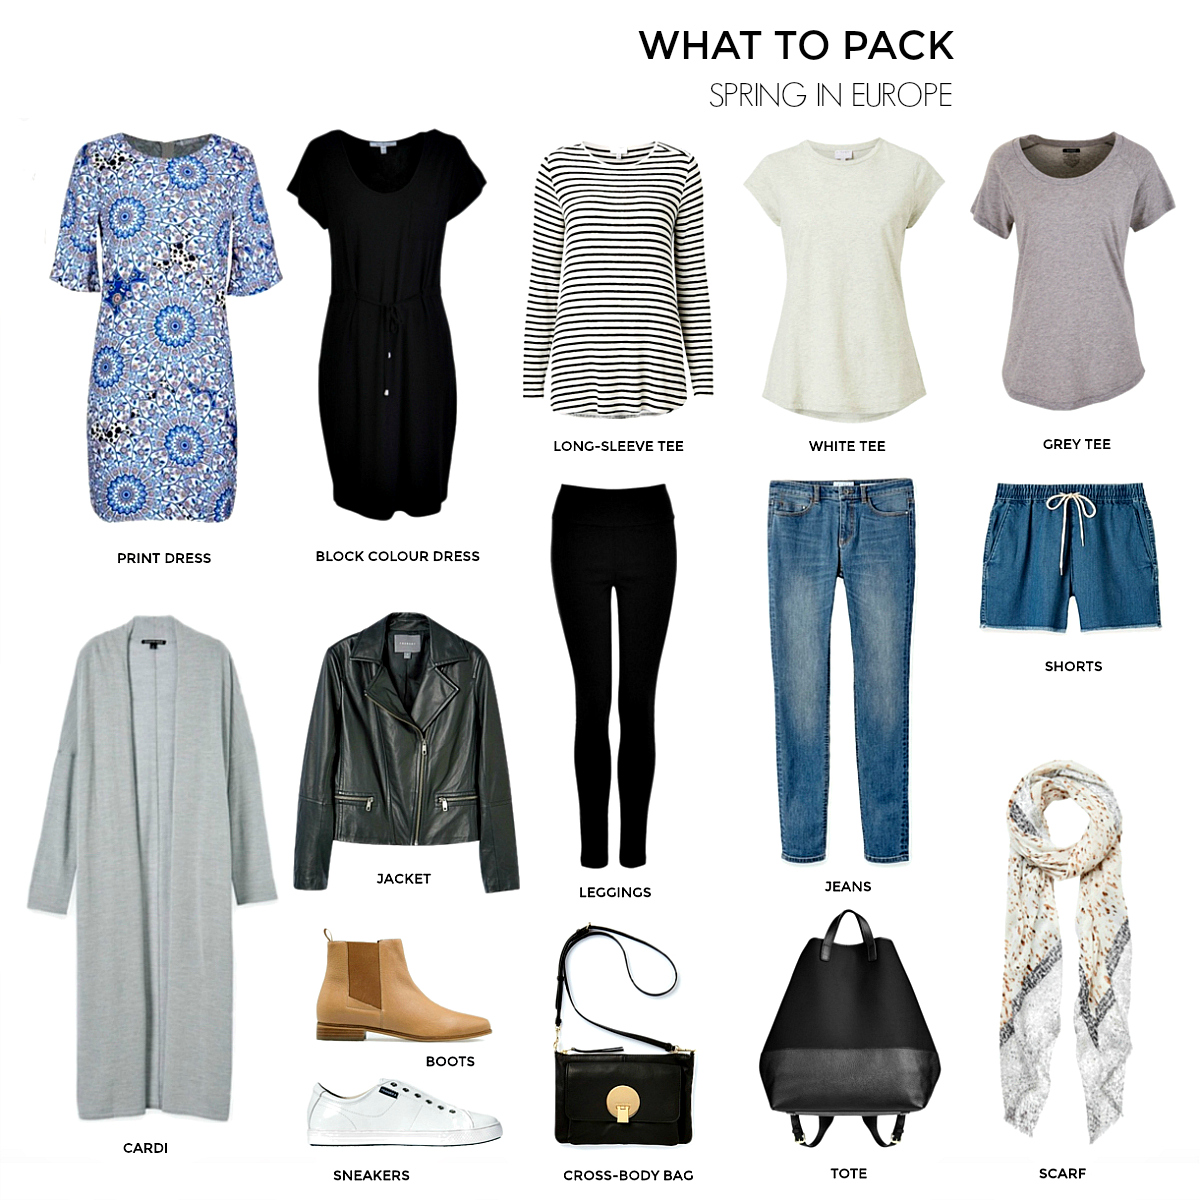 What To Pack For Spring In Europe